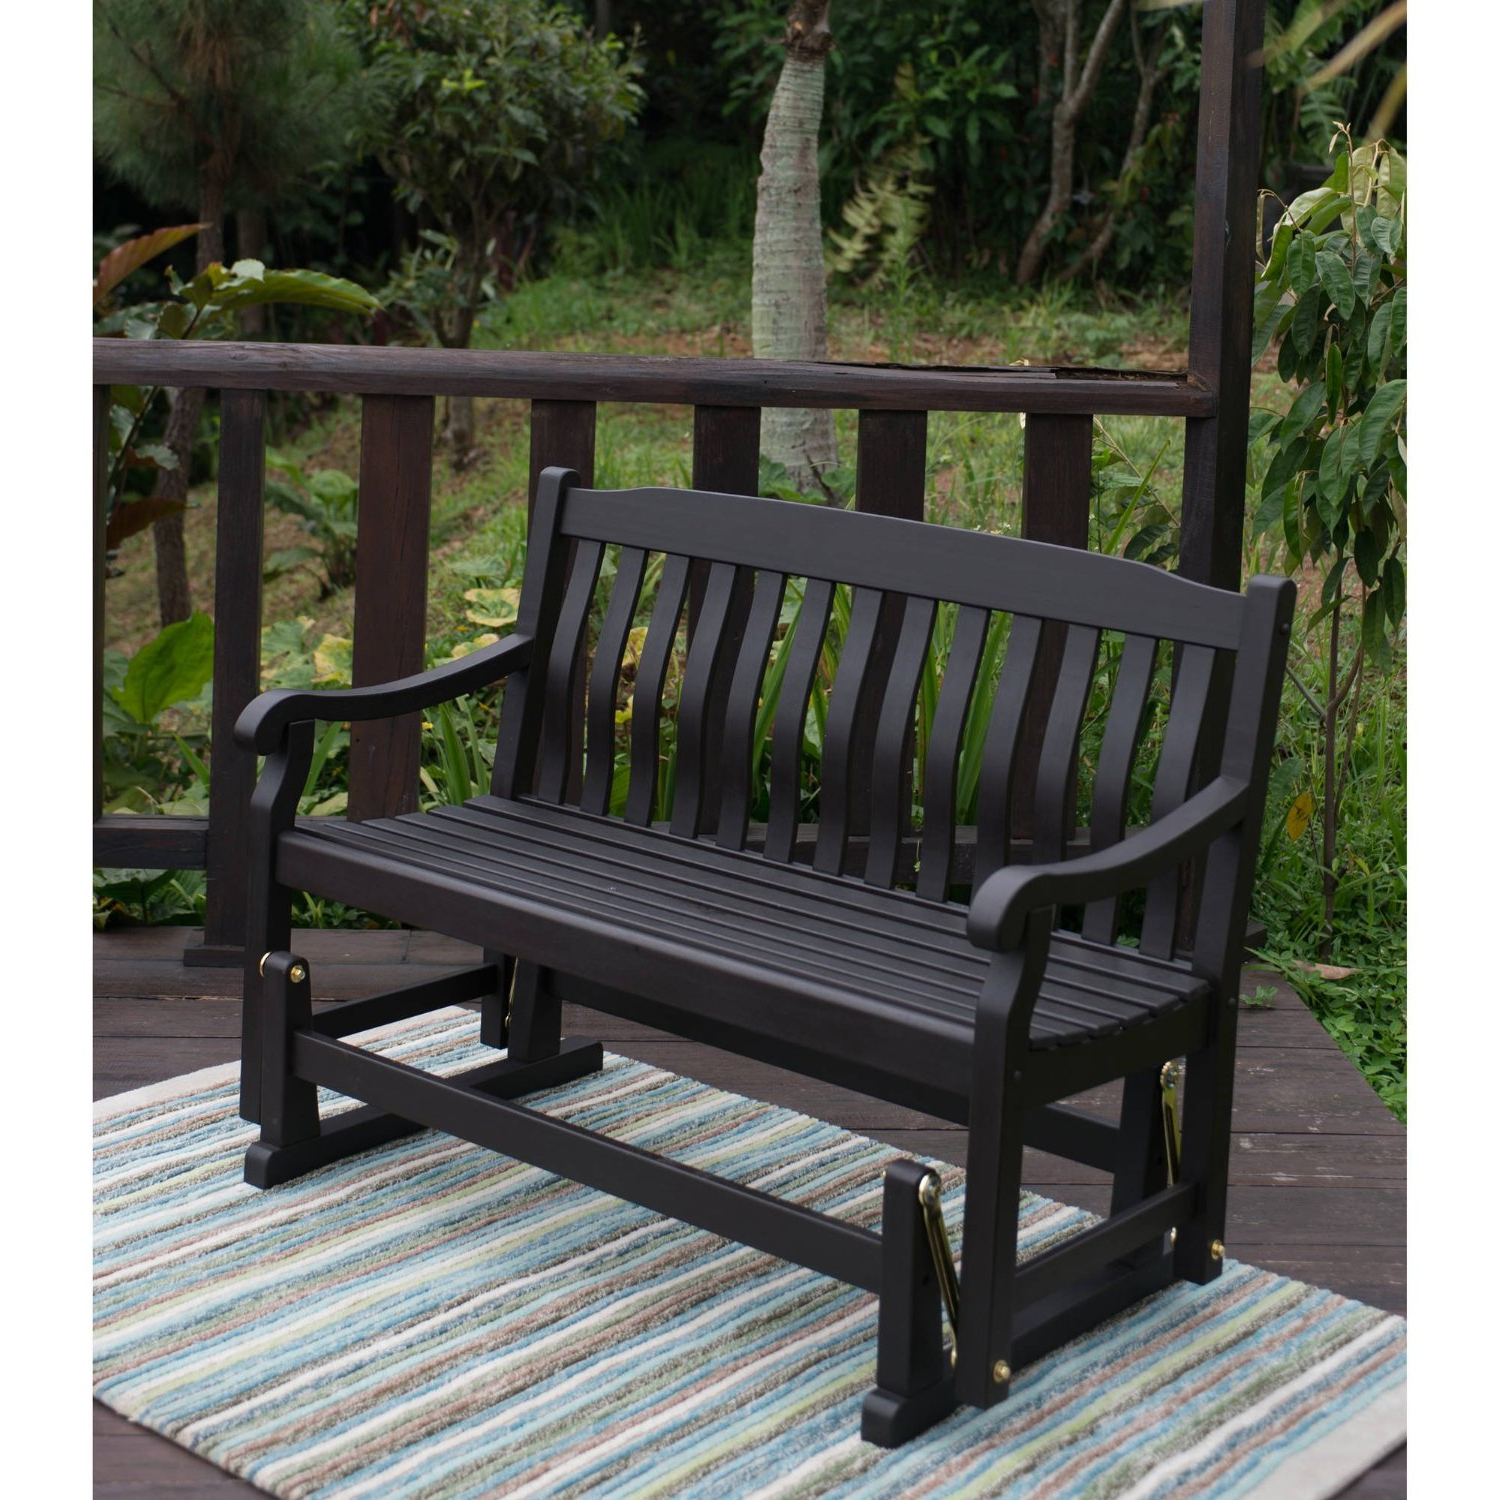 Recent Cheap Patio Furniture Glider Bench, Find Patio Furniture Regarding Black Steel Patio Swing Glider Benches Powder Coated (View 10 of 25)